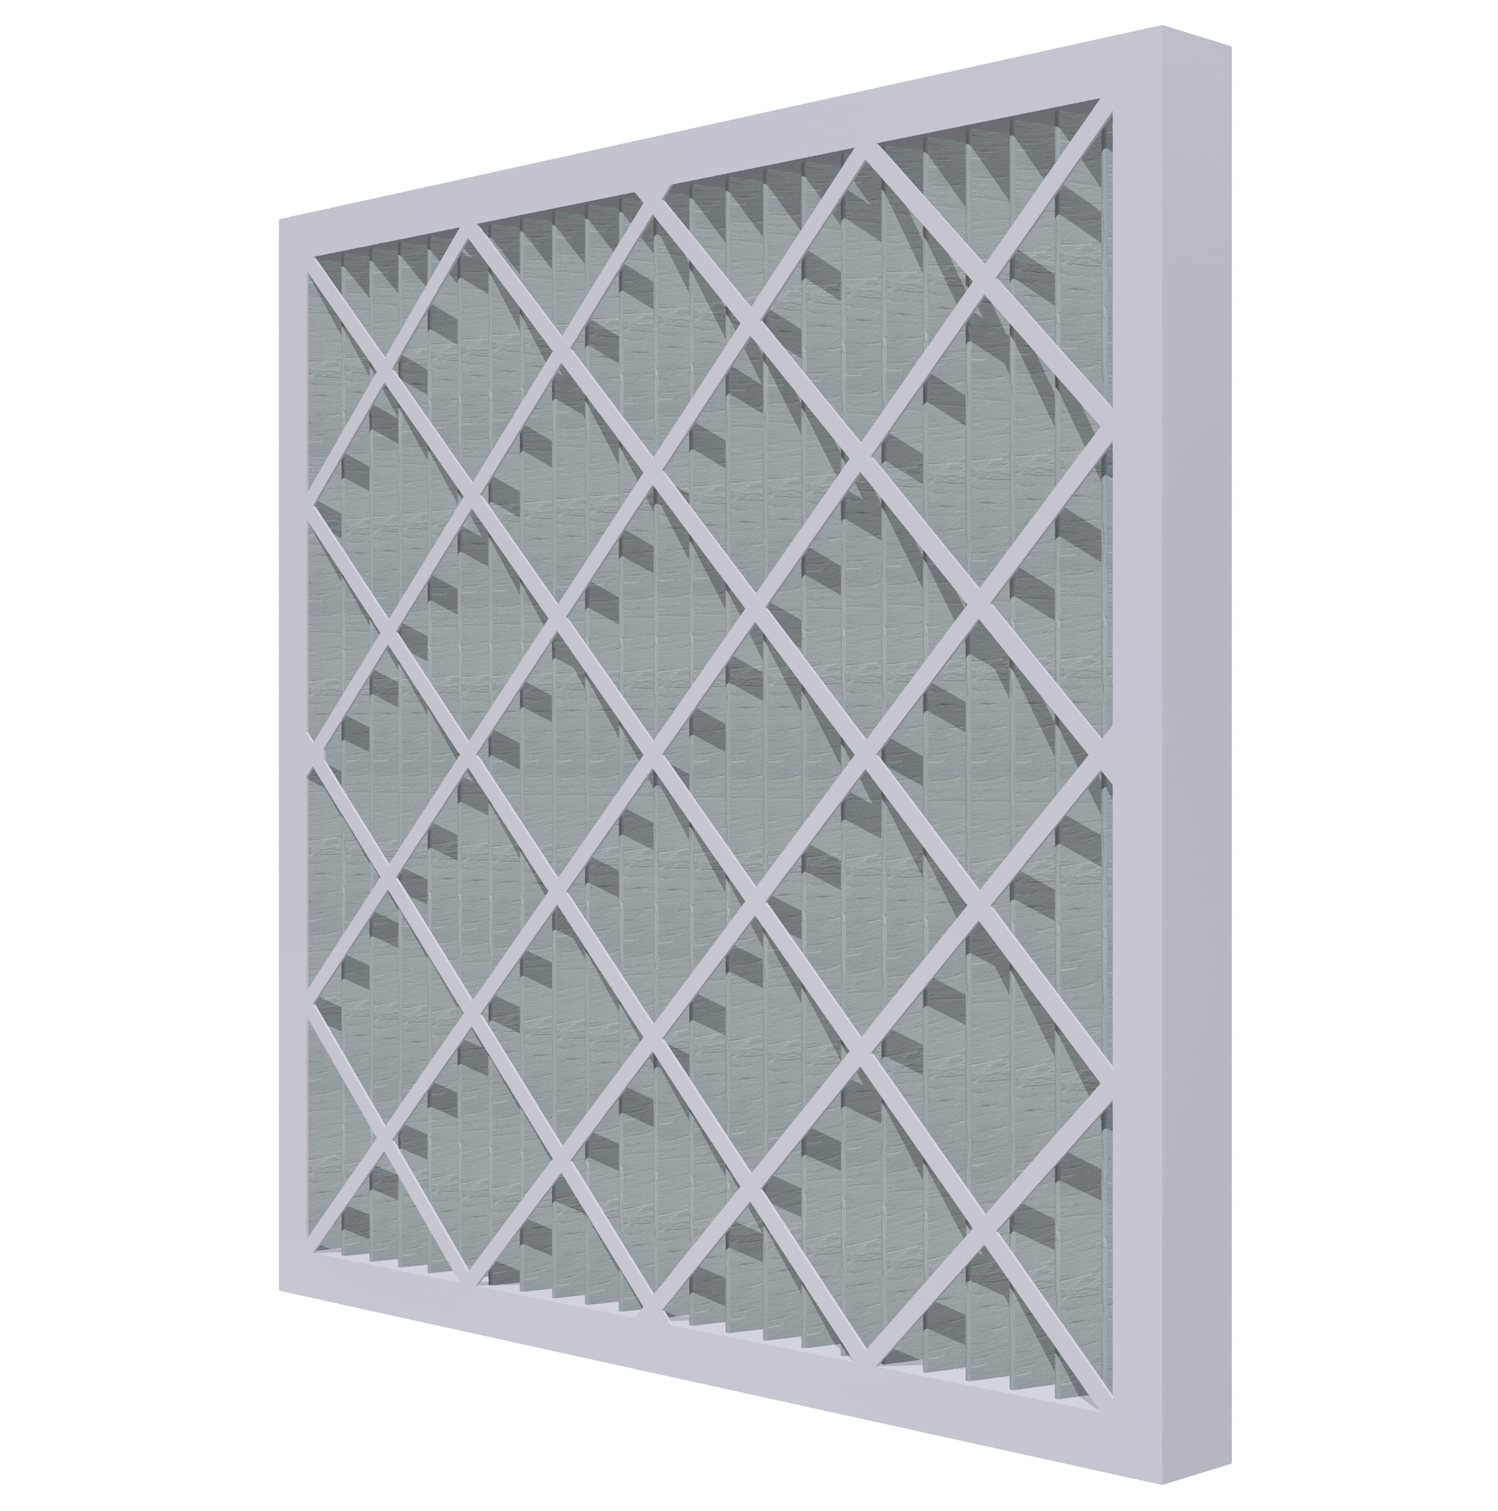 Air Filtration System - Filtration section 4